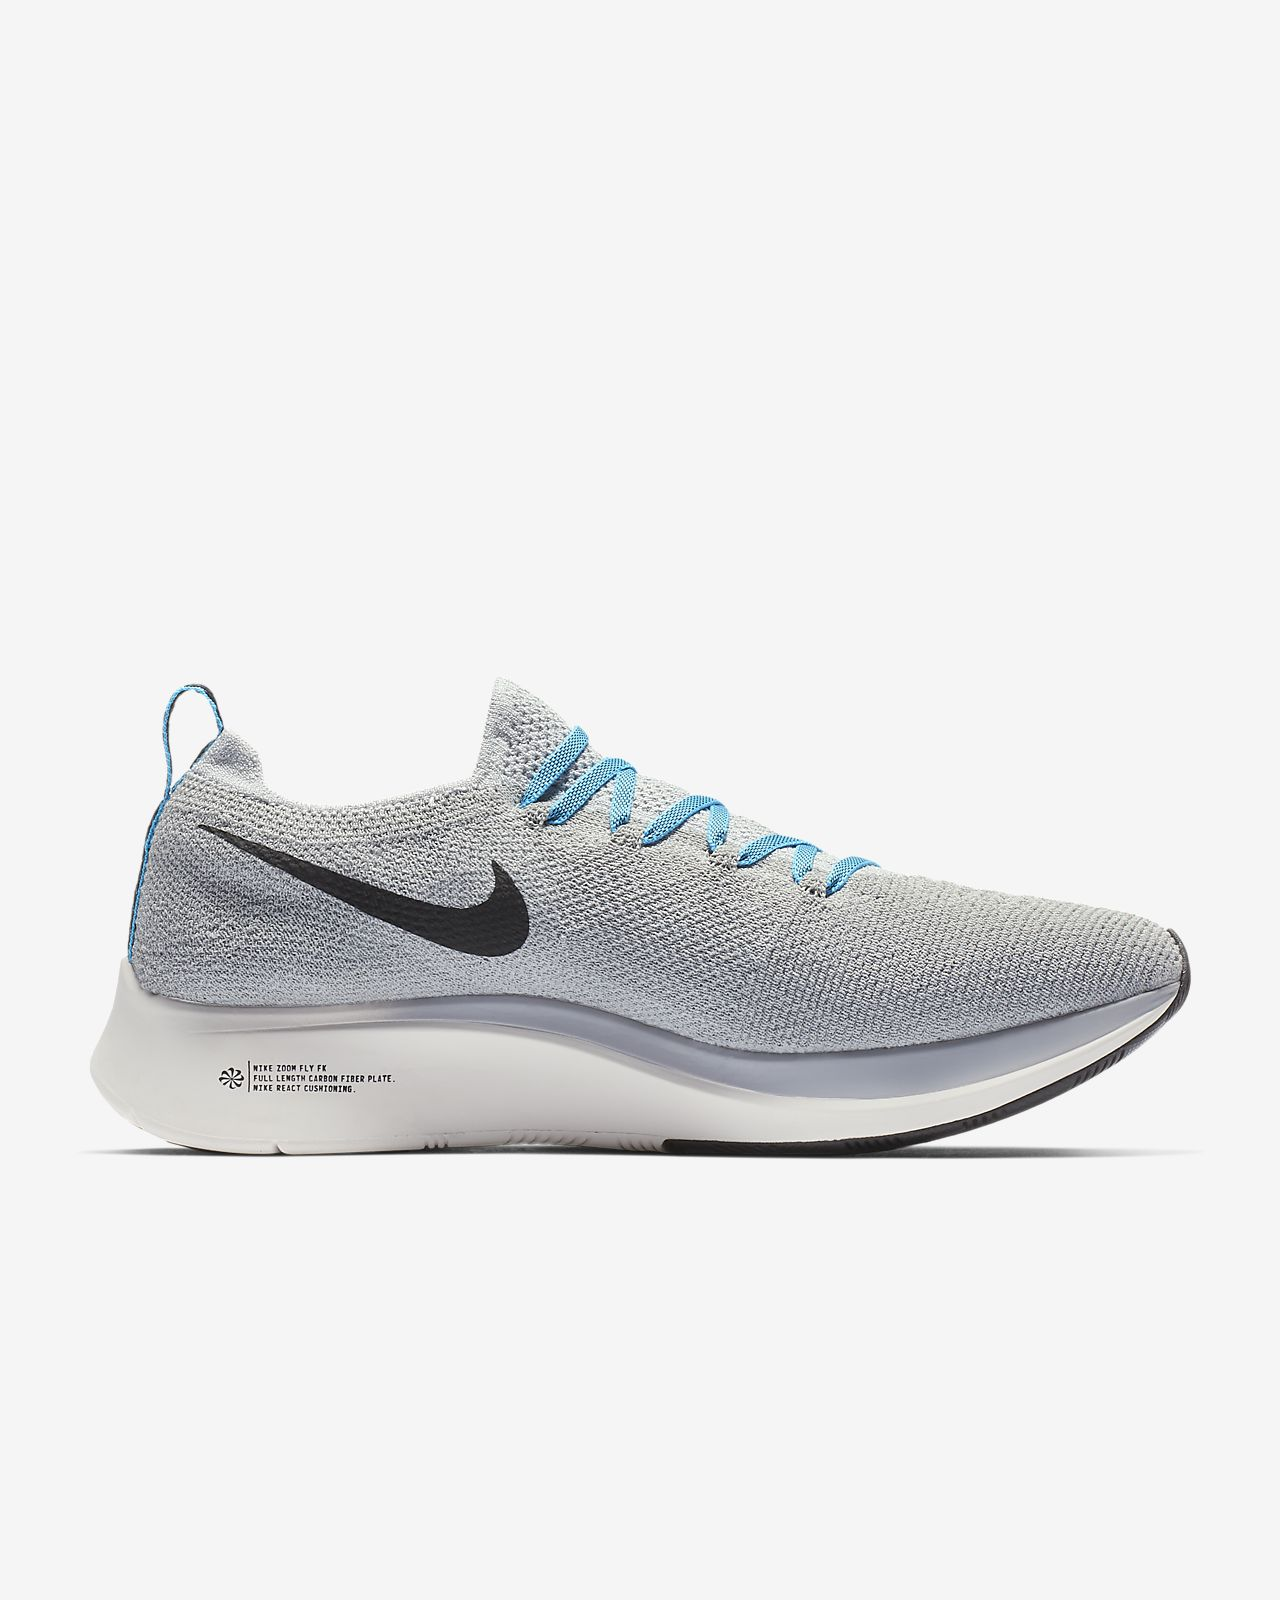 215540446c12b Nike Zoom Fly Flyknit Men s Running Shoe. Nike.com NO